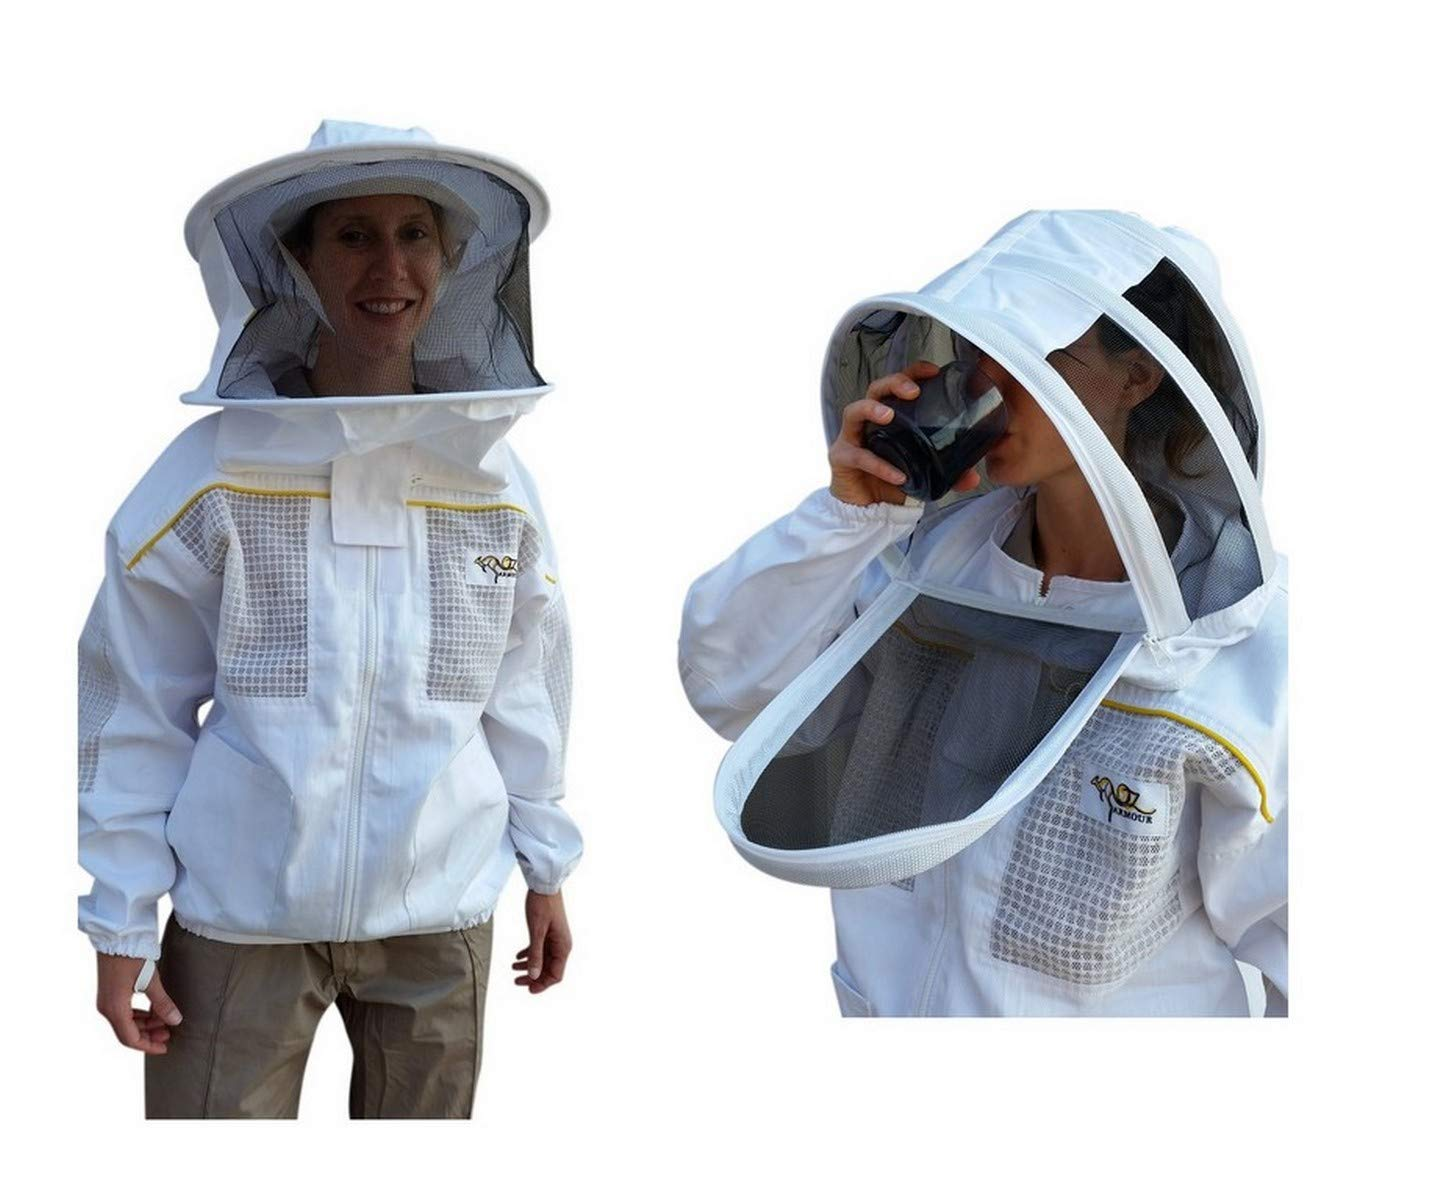 OZ ARMOUR Ventilated Poly Cotton Jacket Extra Cool Beekeeper Costume Kit with 2 Hoods Fencing/Folding & Round Brim Hat (X-Large)